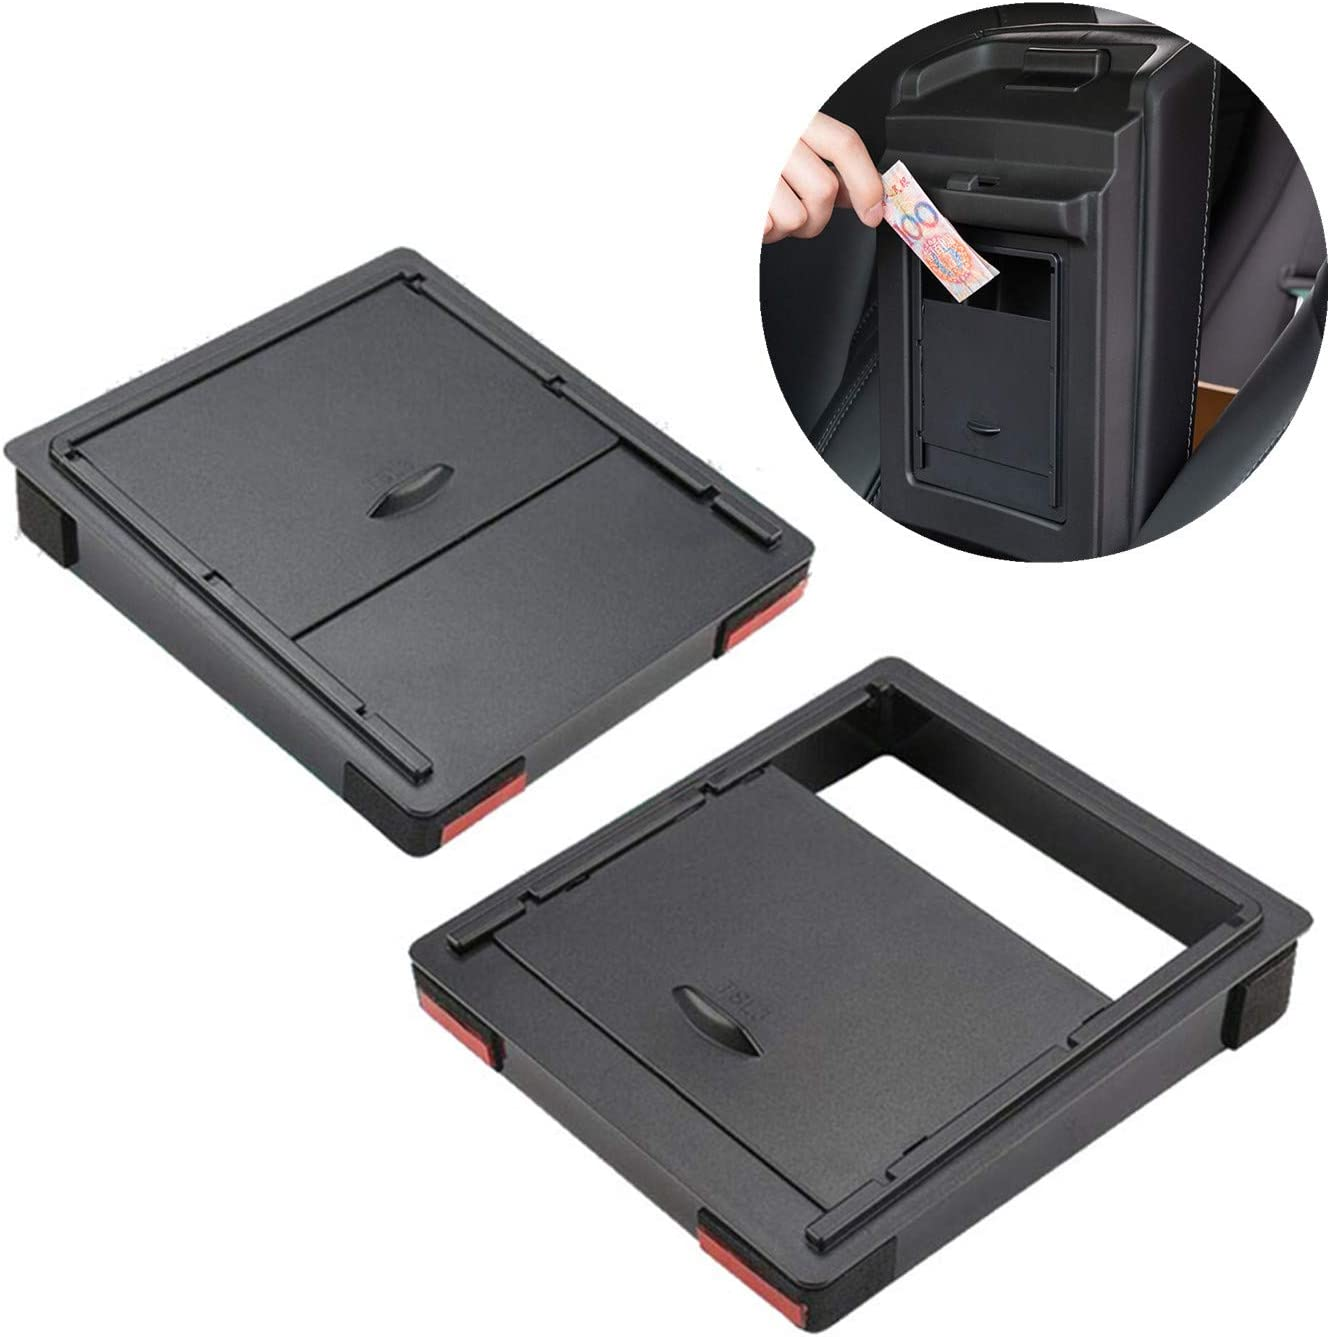 Center Console Hidden Organizer Tray,Armrest Hidden Storage Box for Tesla Model 3 Model Y Accessories